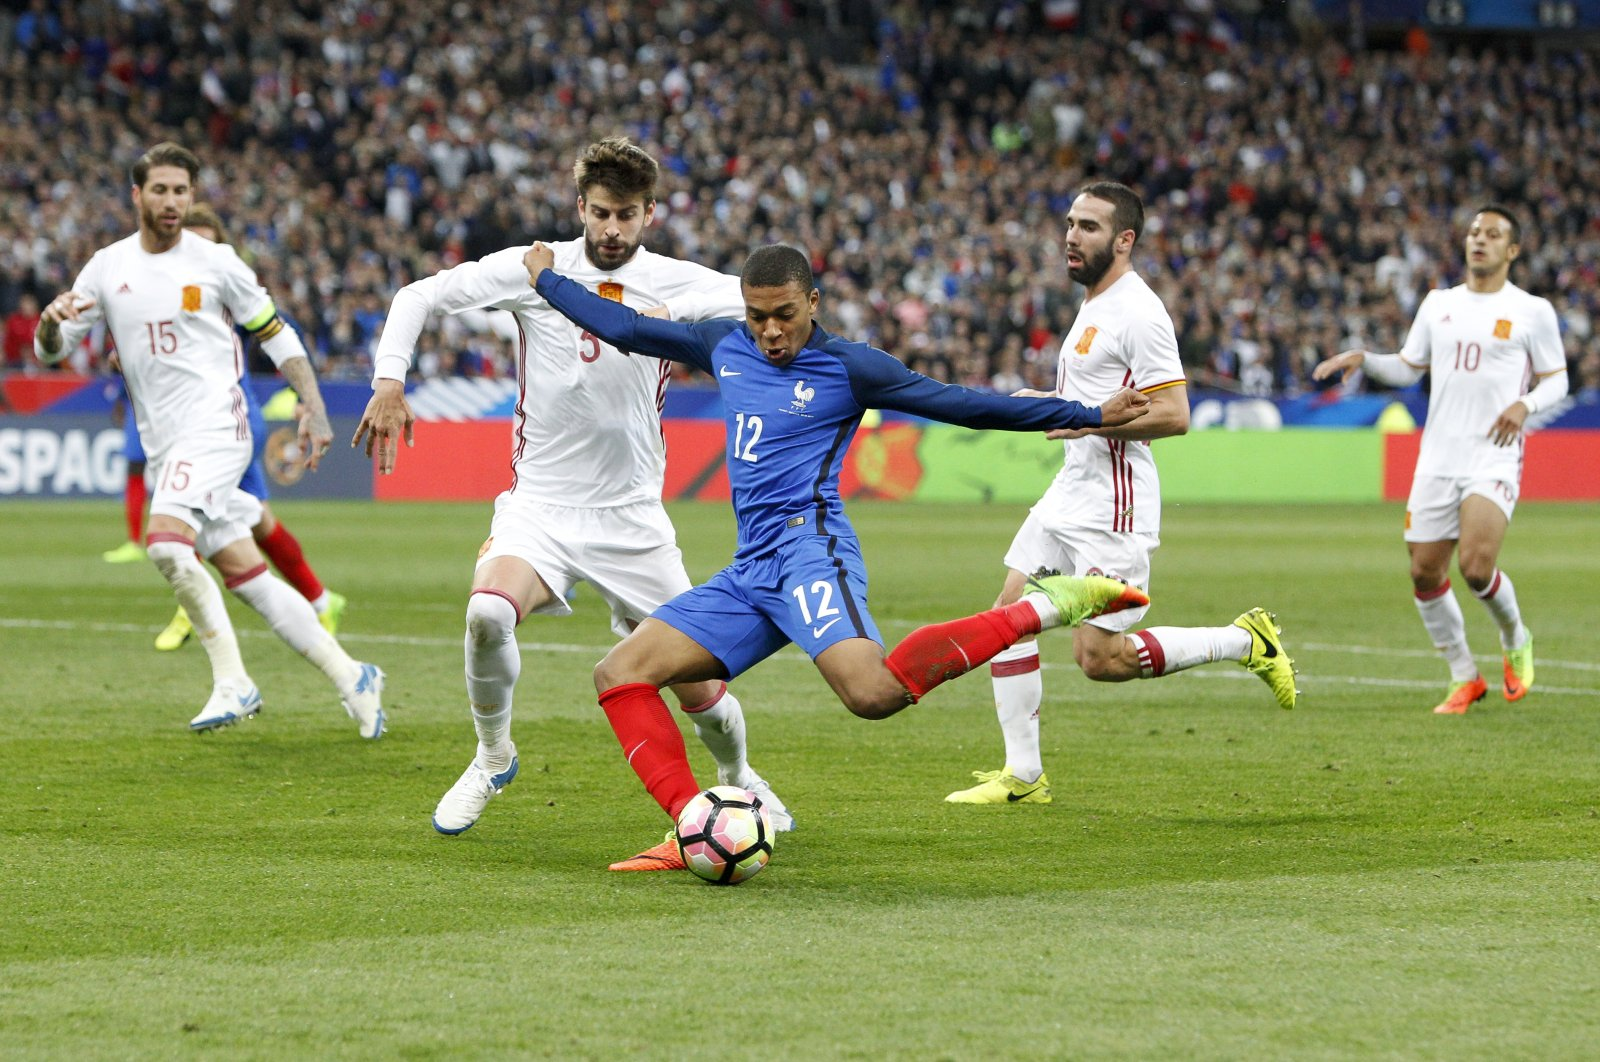 France's Kylian MBappe controls the ball against Spain's Gerard Pique during a friendly match at Stade de France, in Saint-Denis, France, March 28, 2017. (Getty Images)